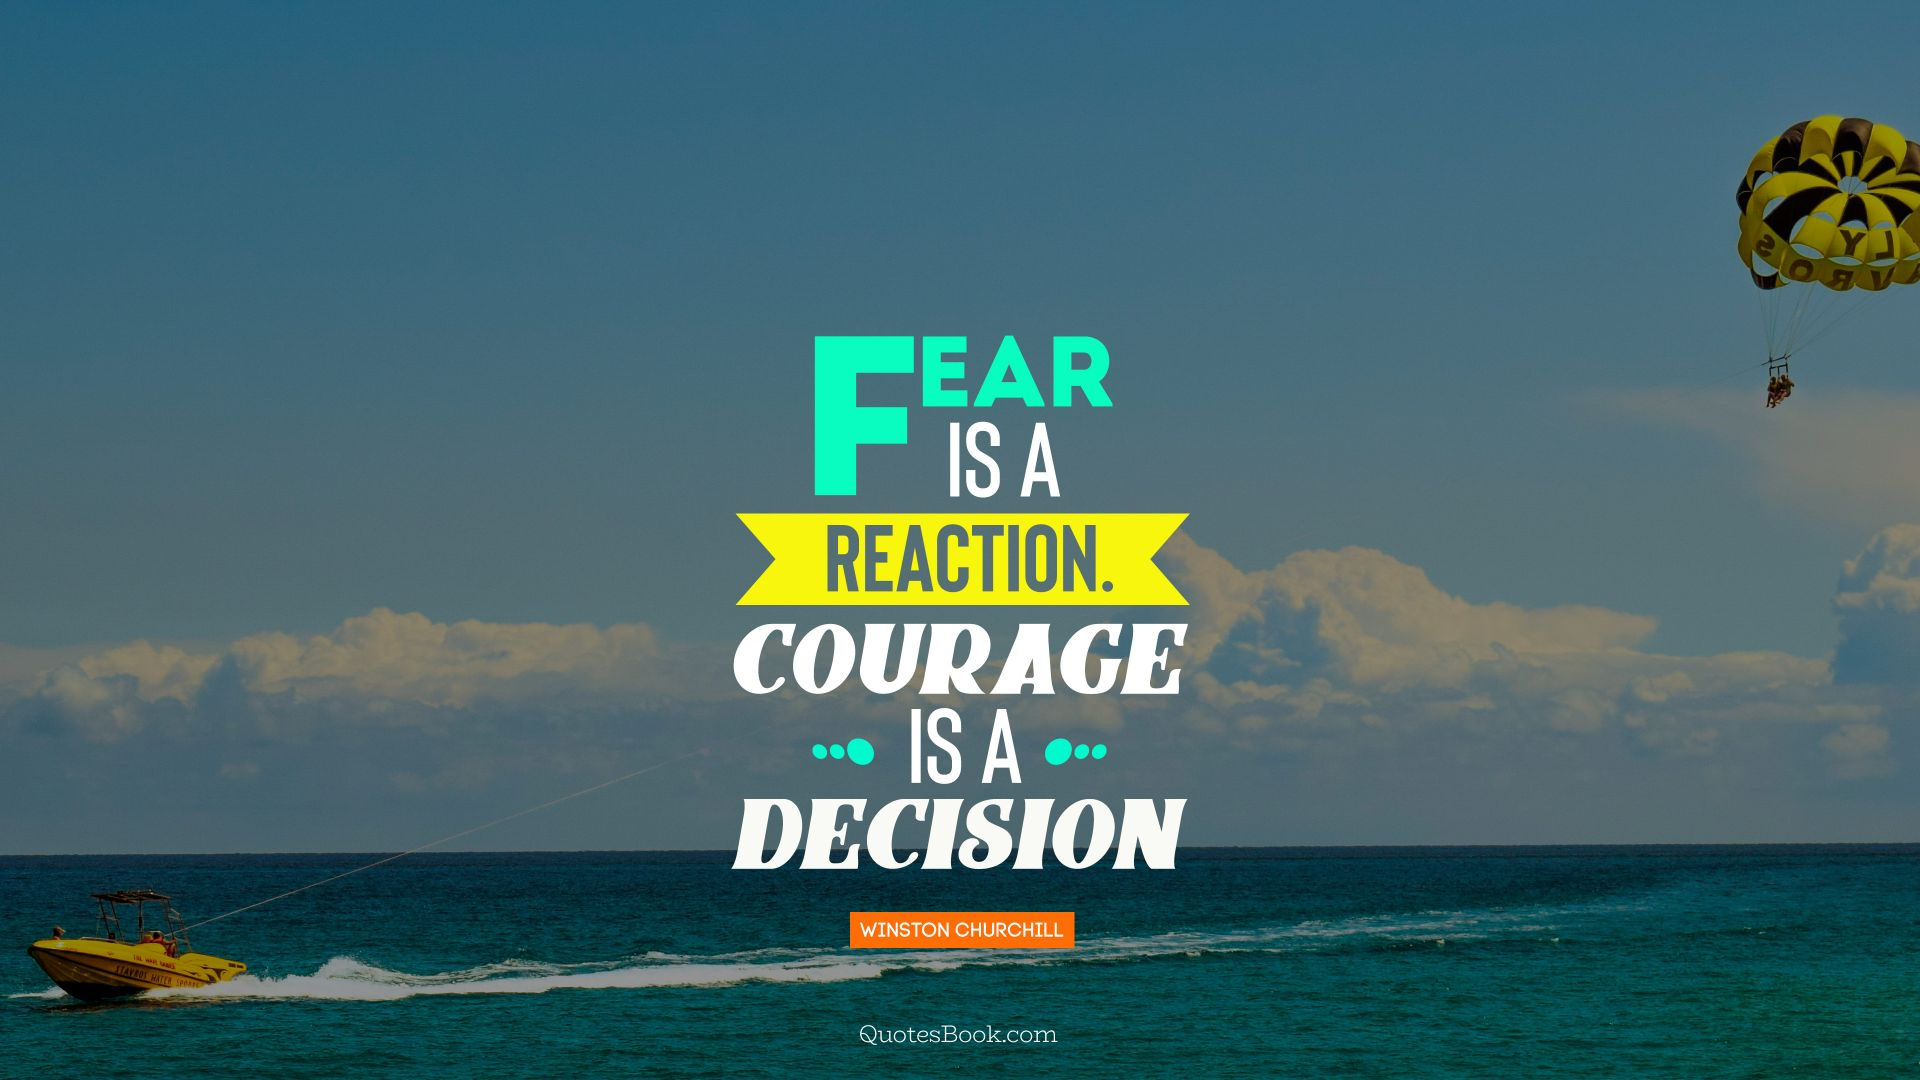 Fear is a reaction.Courage is a decision. - Quote by Winston Churchill